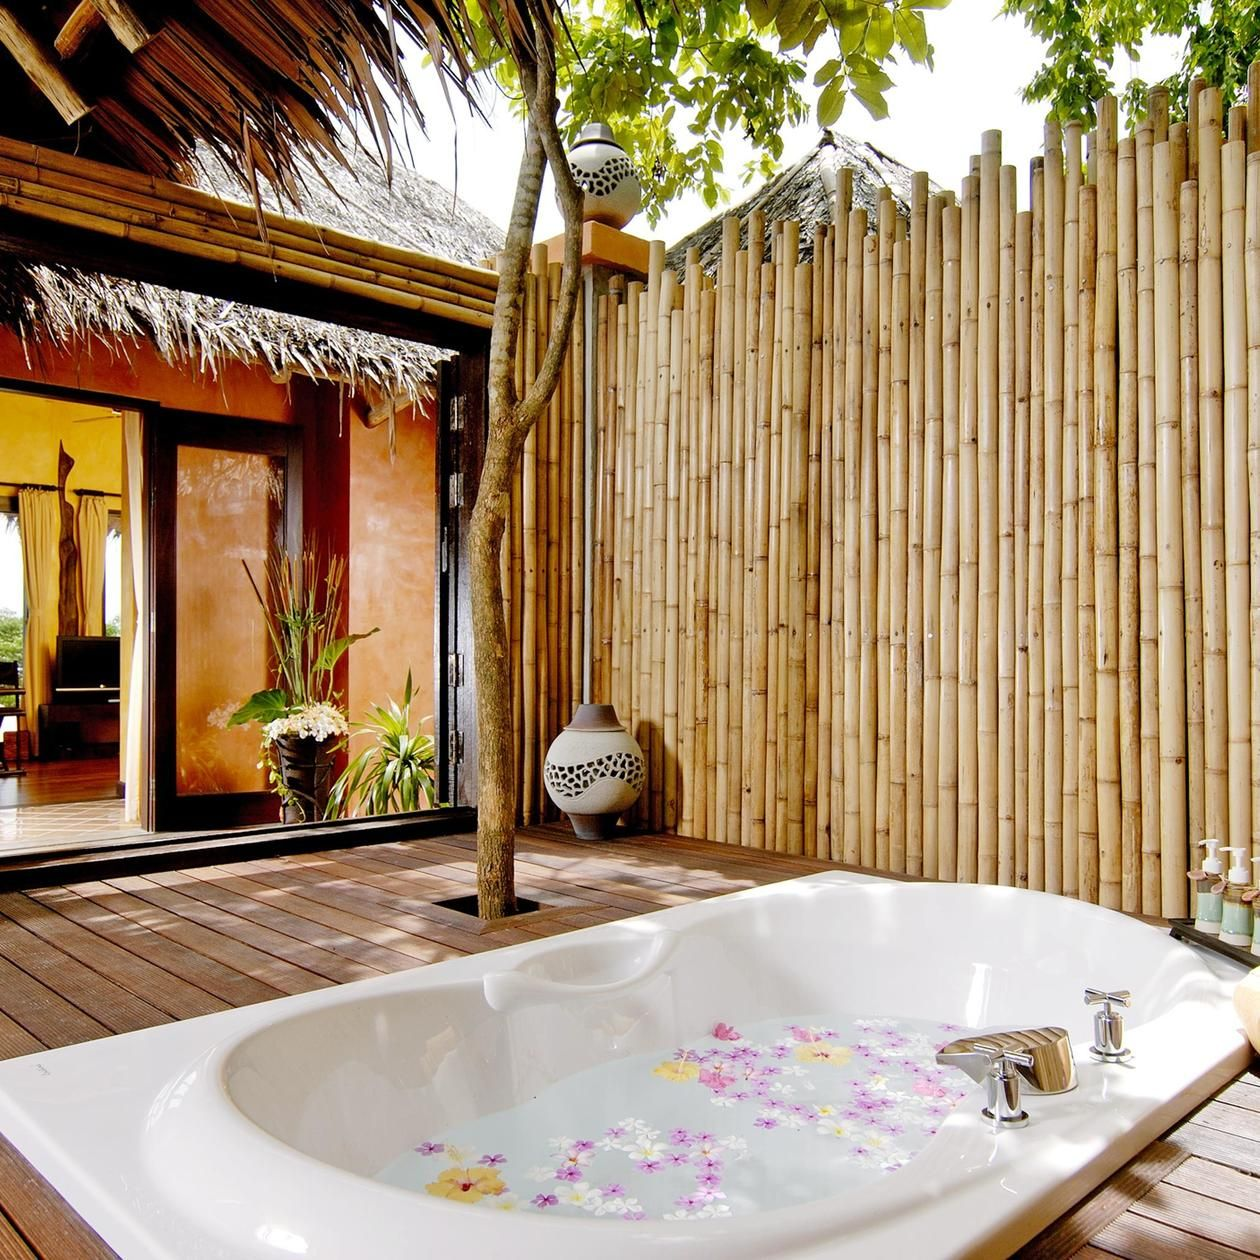 Phi Island Village Beach Resort Ko Don Thailand Bath Beachfront Deck Hot Tub Jacuzzi Patio Romantic Sea Tropical Villa